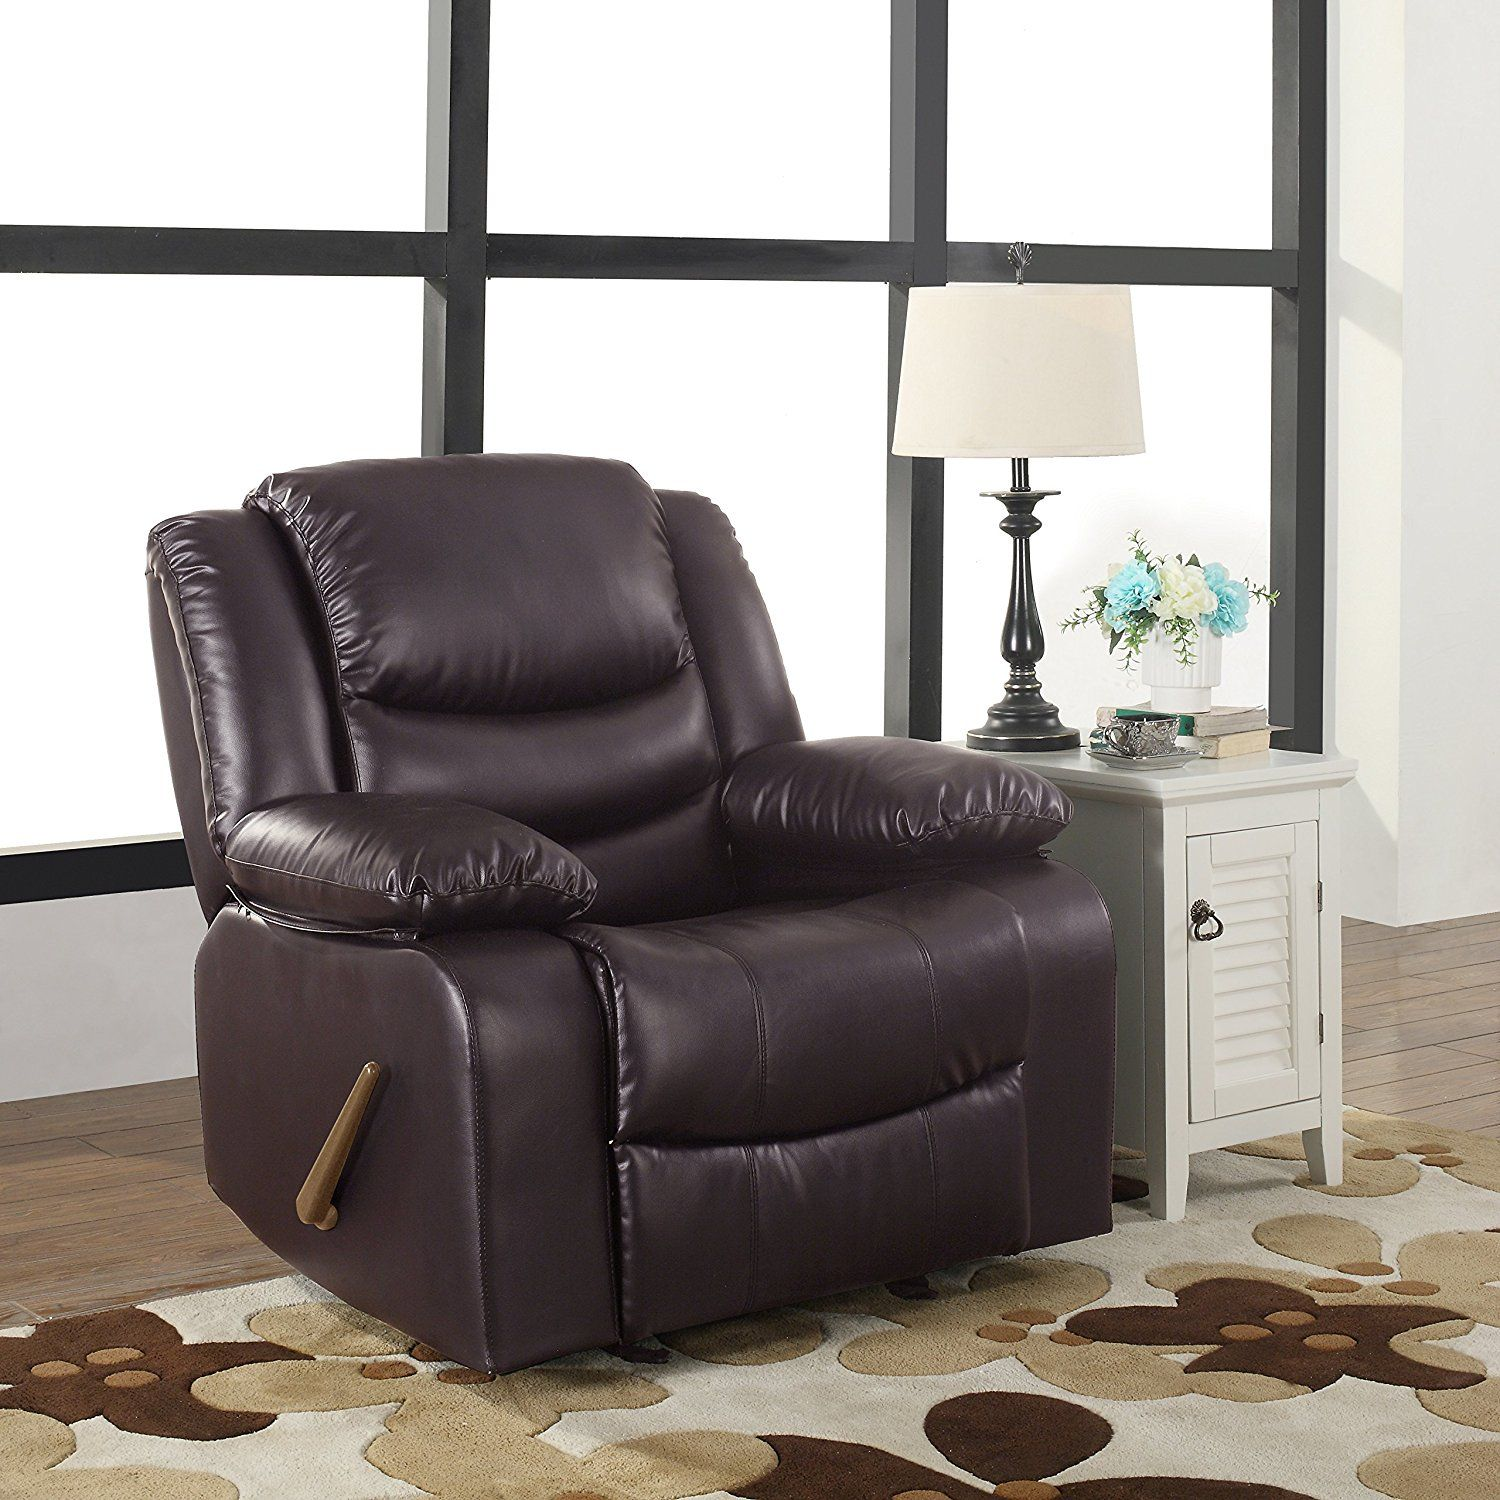 Stupendous Bonded Leather Rocker Recliner Chair Daily Cool Gadgets Bralicious Painted Fabric Chair Ideas Braliciousco